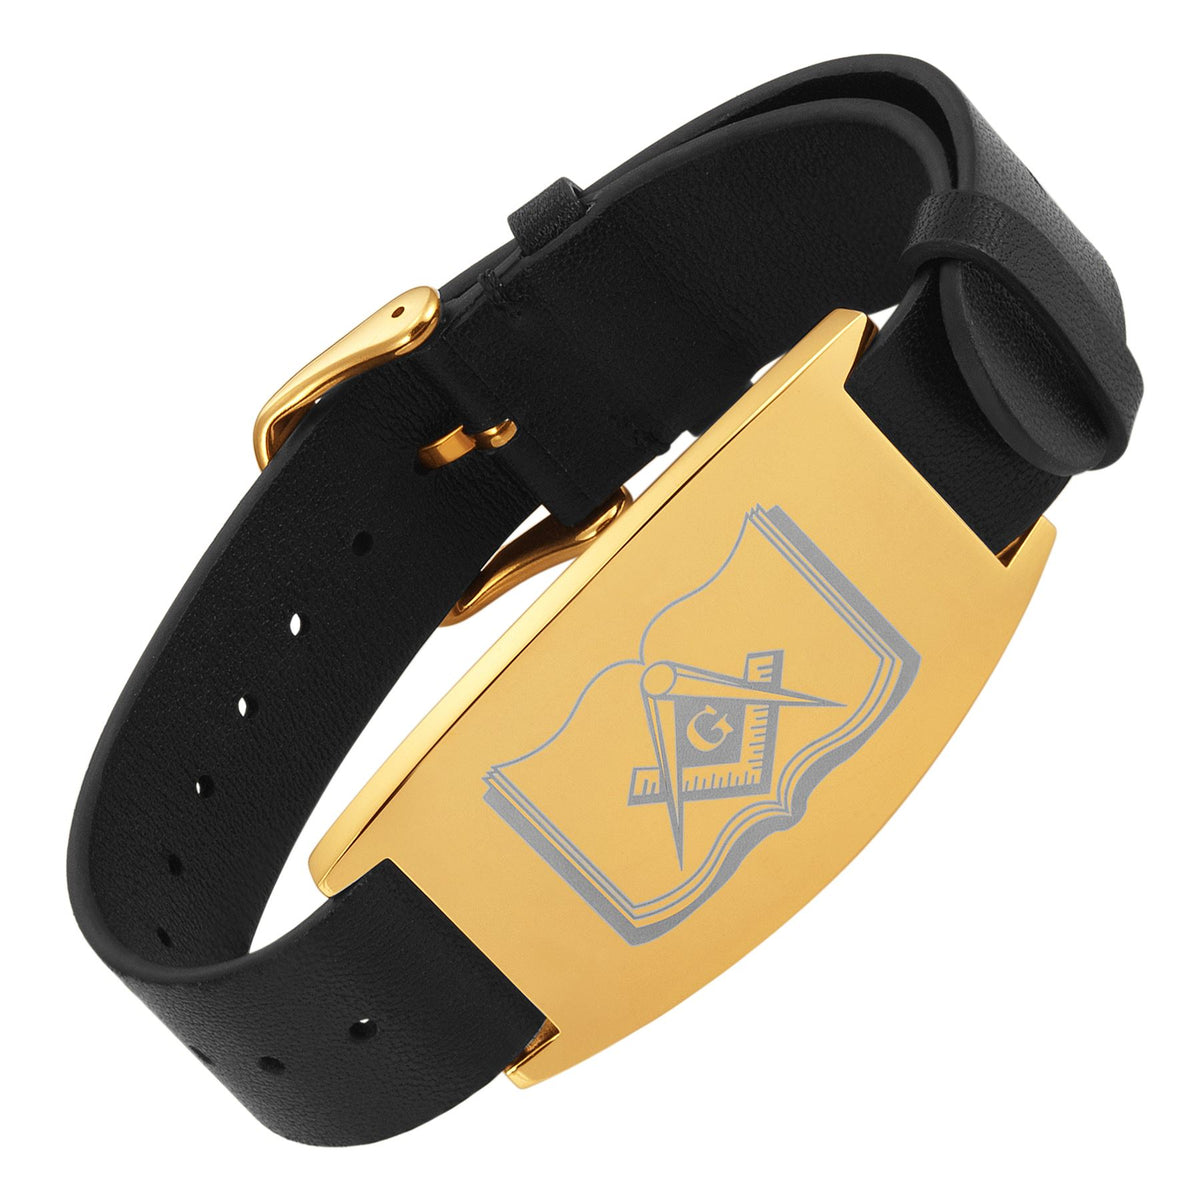 MasonicMan Leather Freemasonry Masonic Bracelet with Square and Compass on Bible in Gift Box …